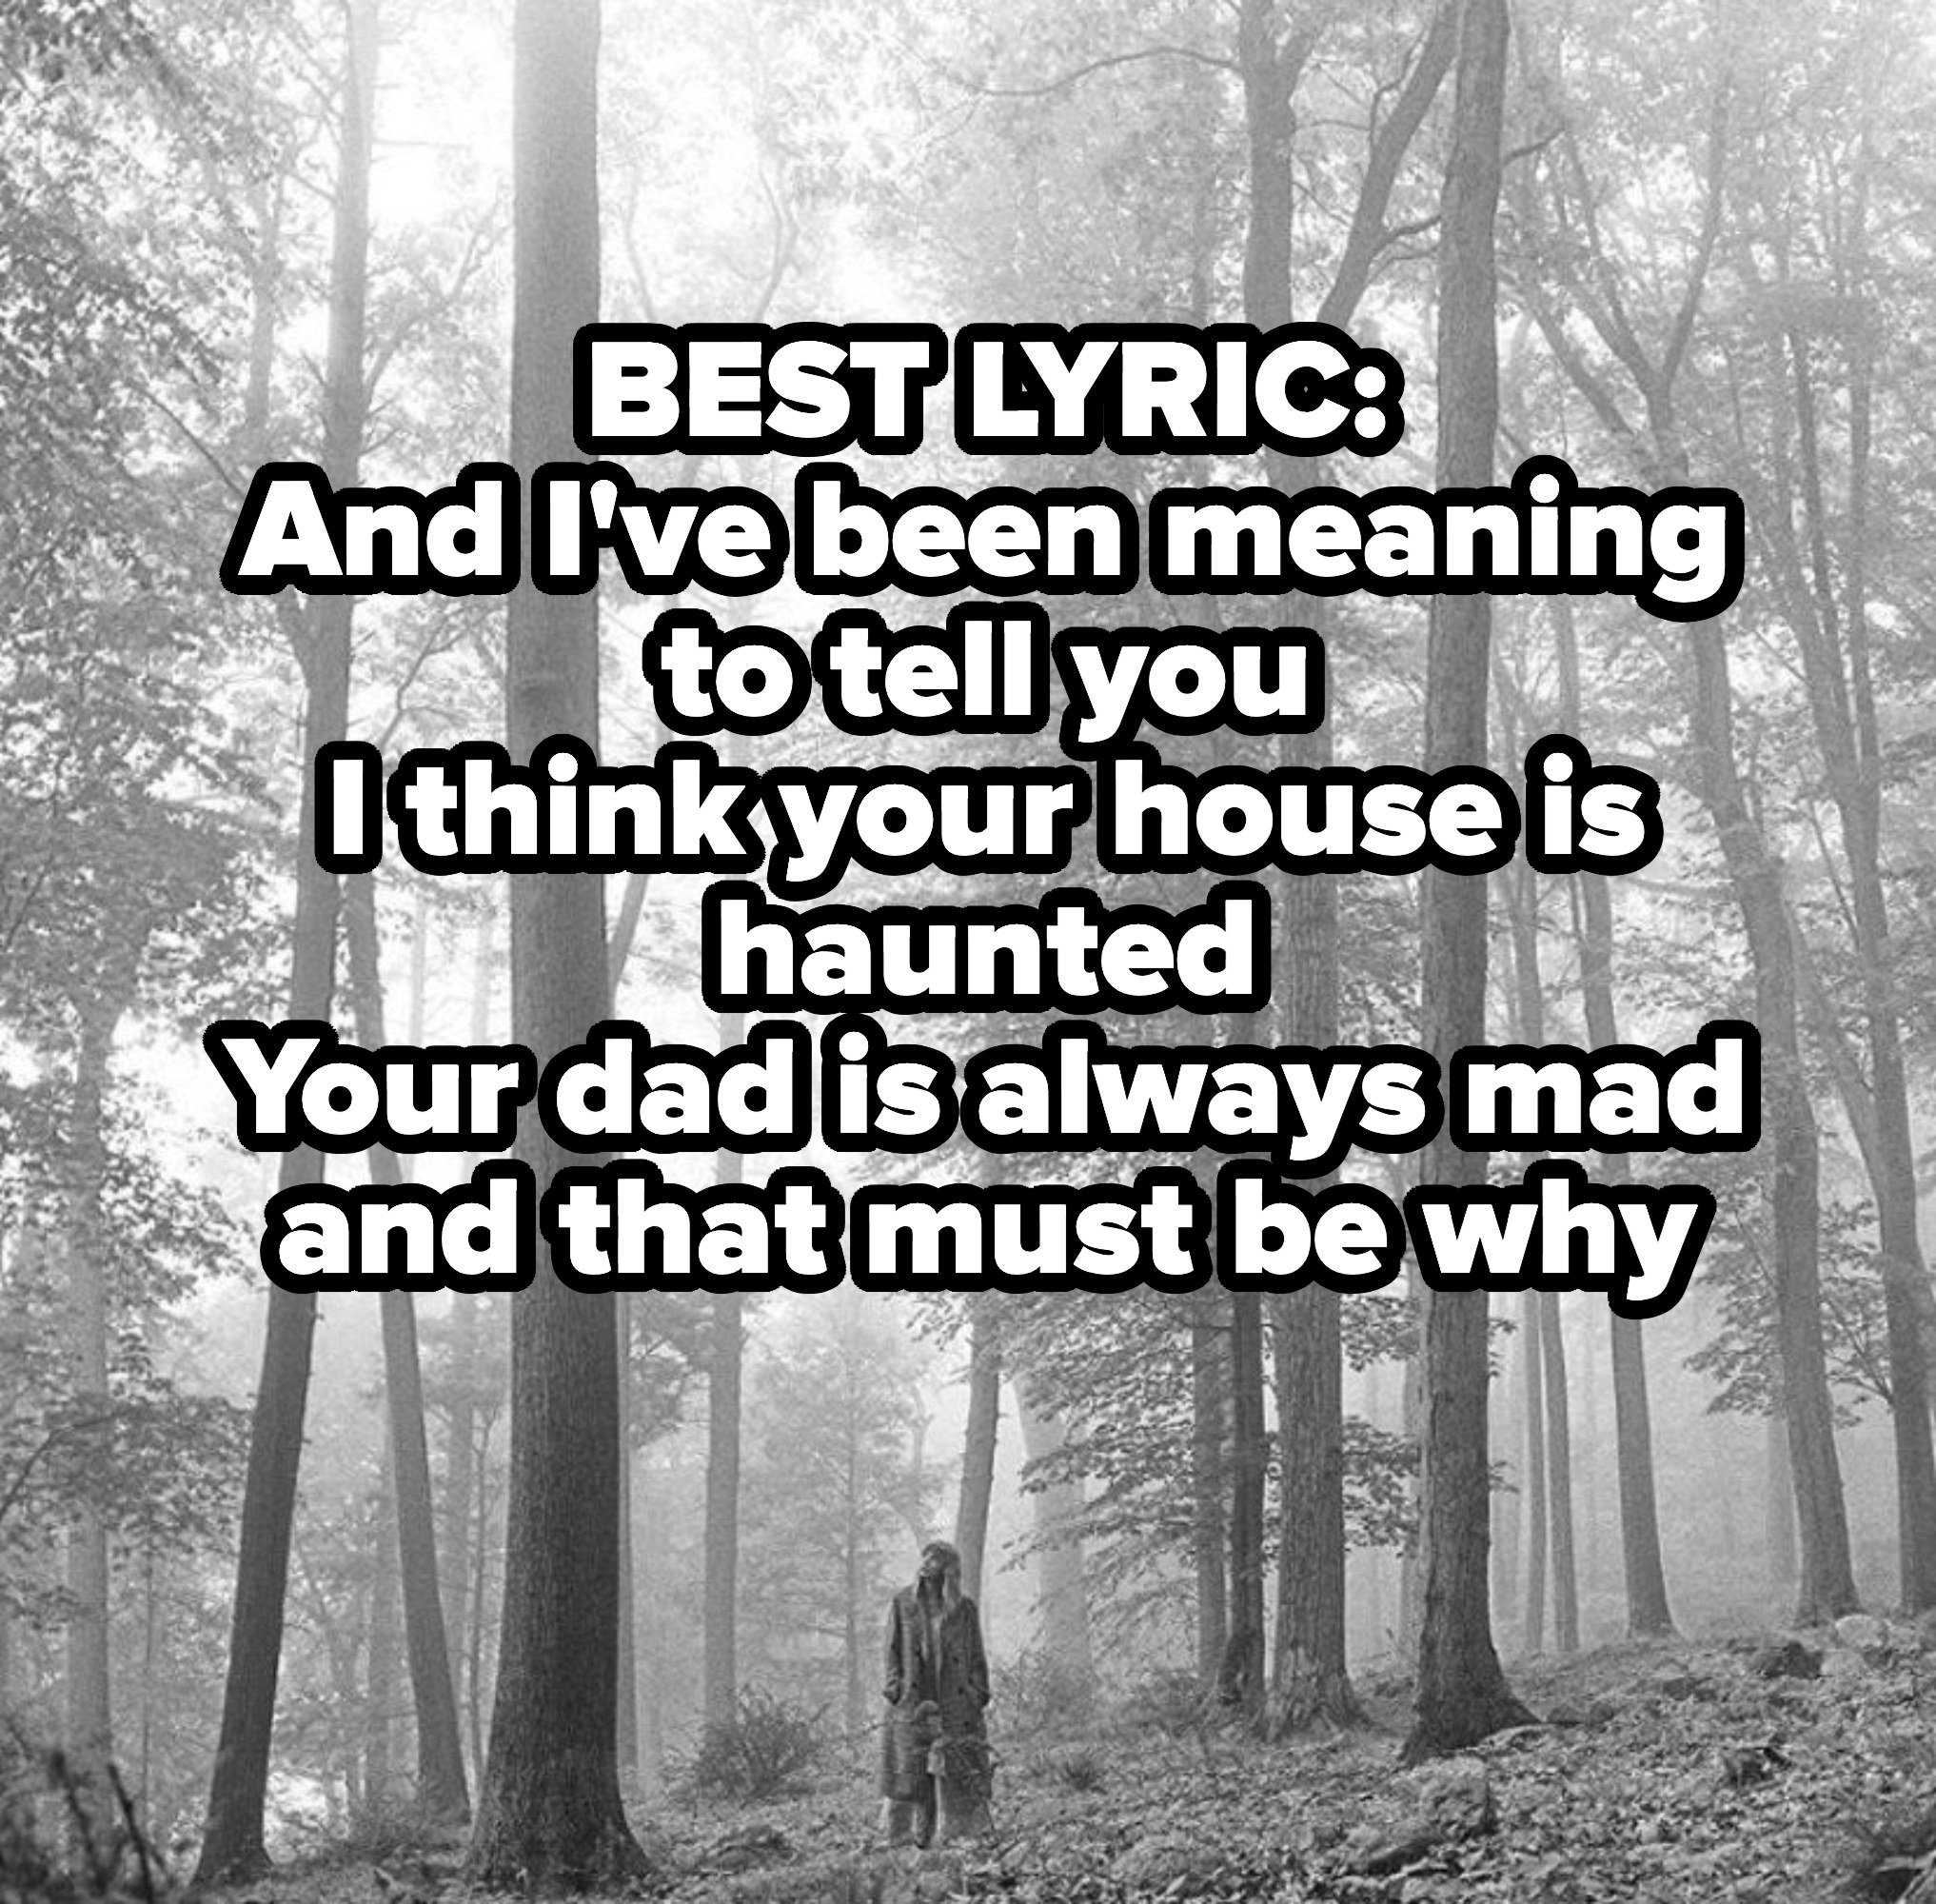 BEST LYRIC: And I've been meaning to tell you I think your house is haunted Your dad is always mad and that must be why